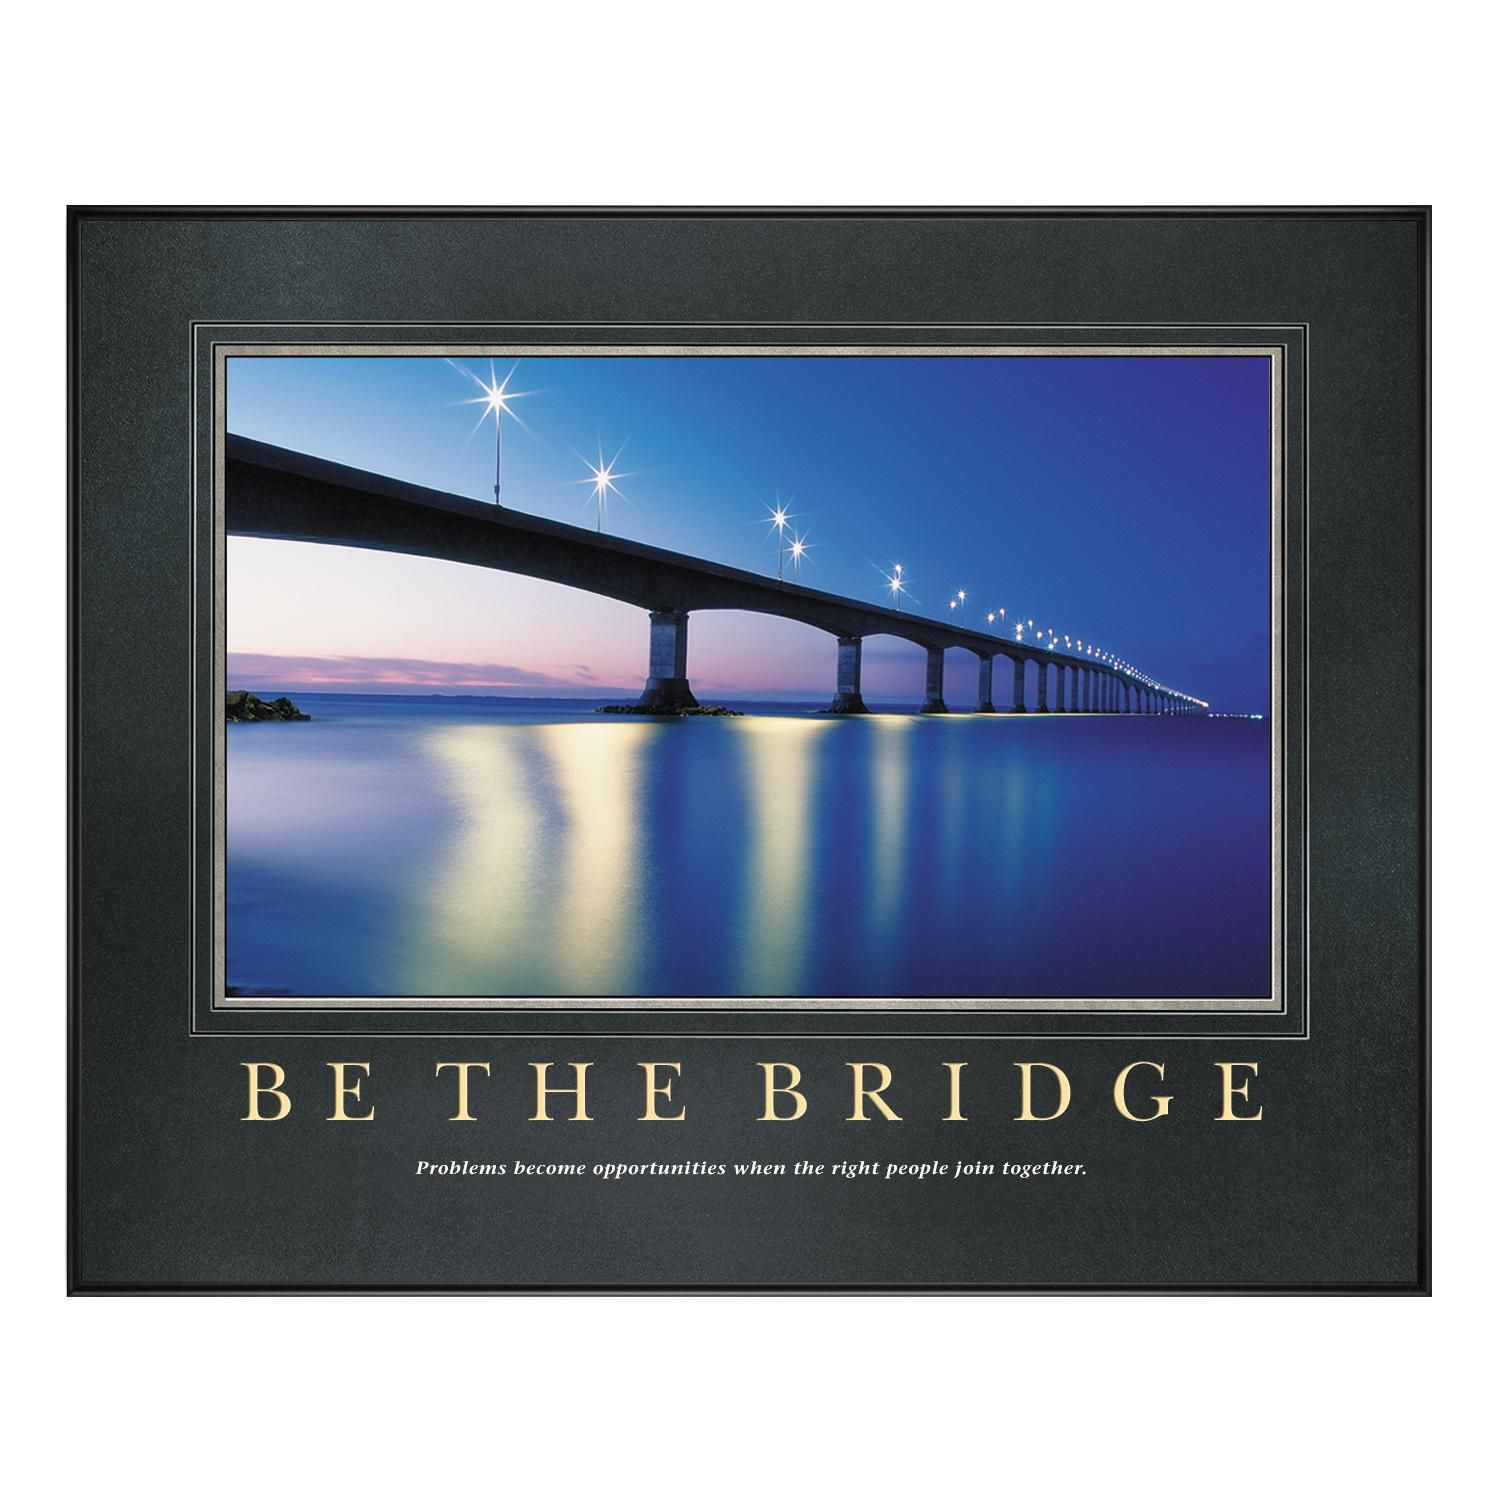 Be The Bridge Motivational Poster